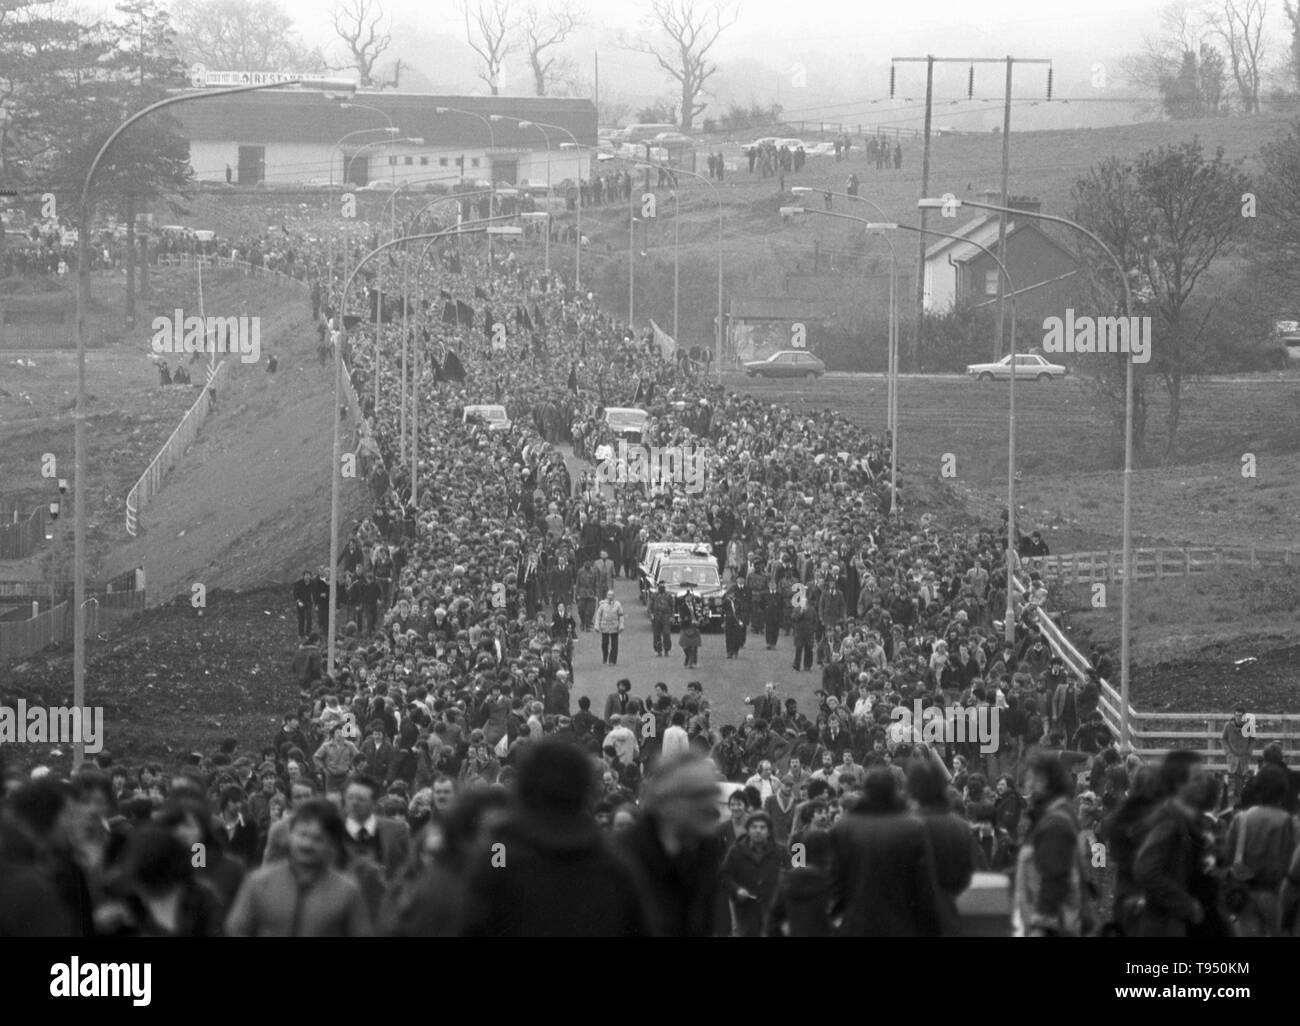 A general view of the funeral procession of IRA hunger protester Bobby Sands, MP. The procession left St Luke's Church on the Twinbrook Estate for the 3-mile journey to Milltown cemetery, Belfast. - Stock Image